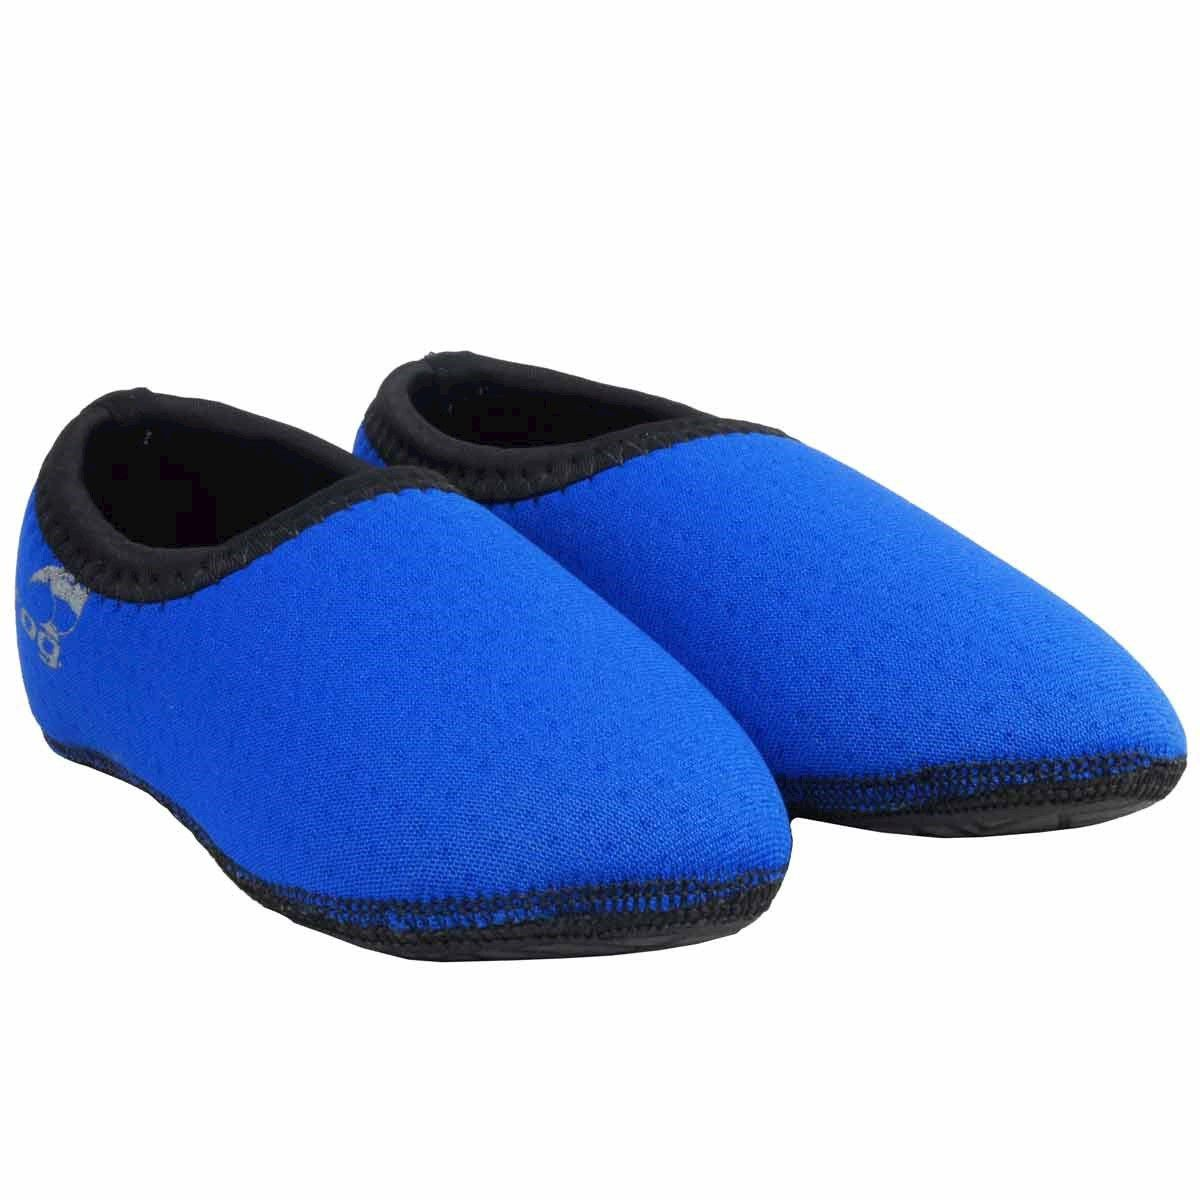 Sapato de Neoprene Adulto Fit Azul Royal Ufrog